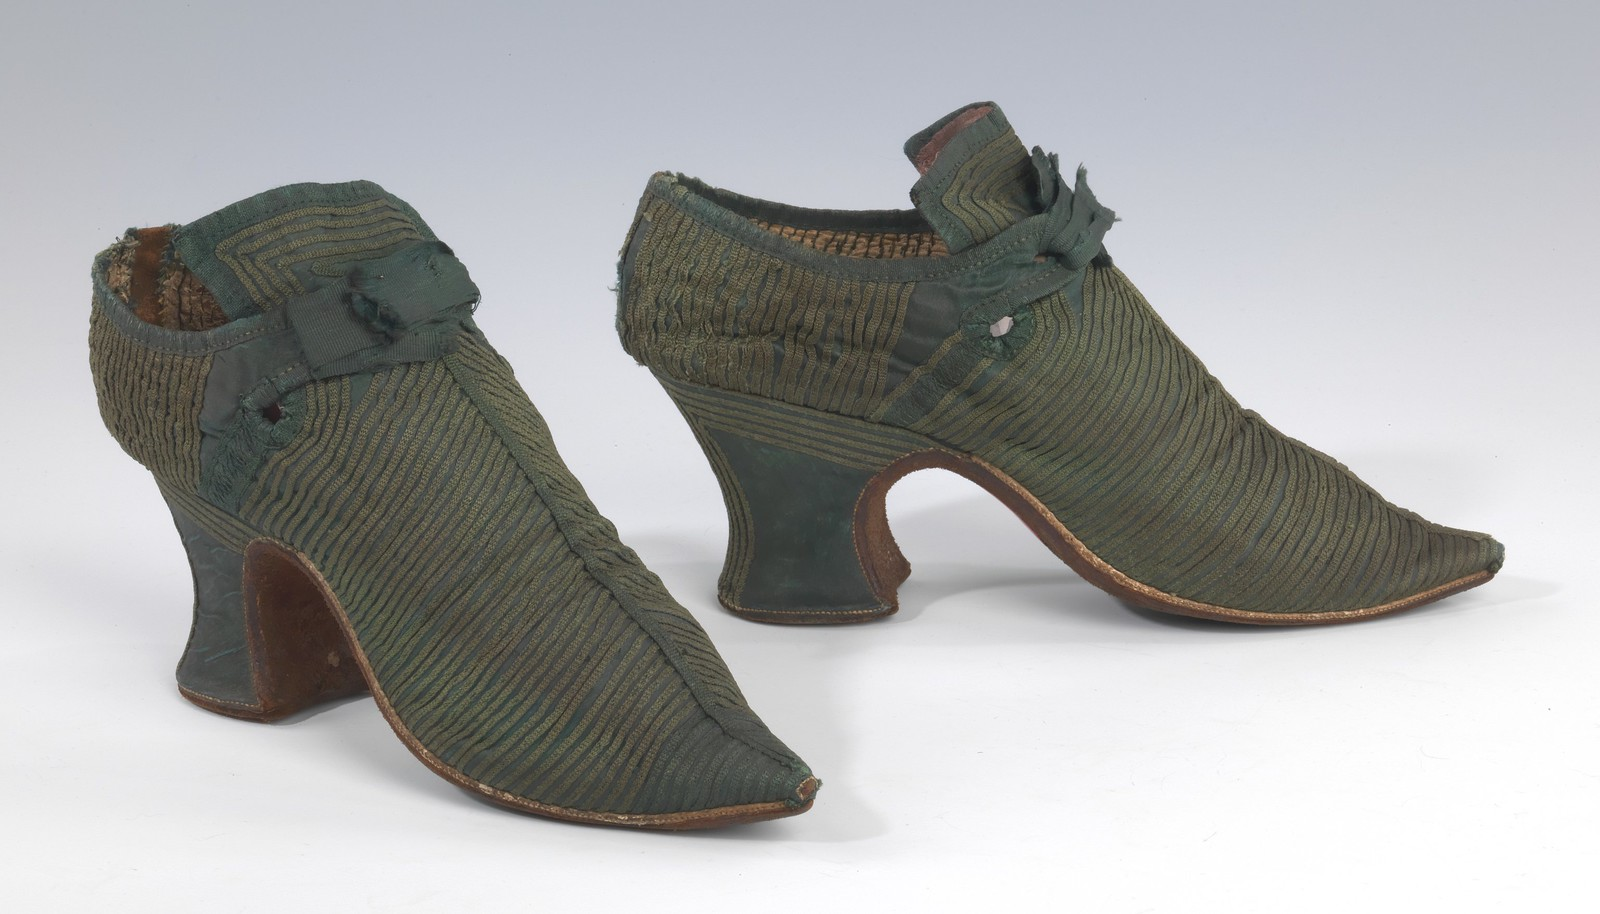 51e34dede9330 The Colorful Shoes of the 18th Century – 5-Minute History